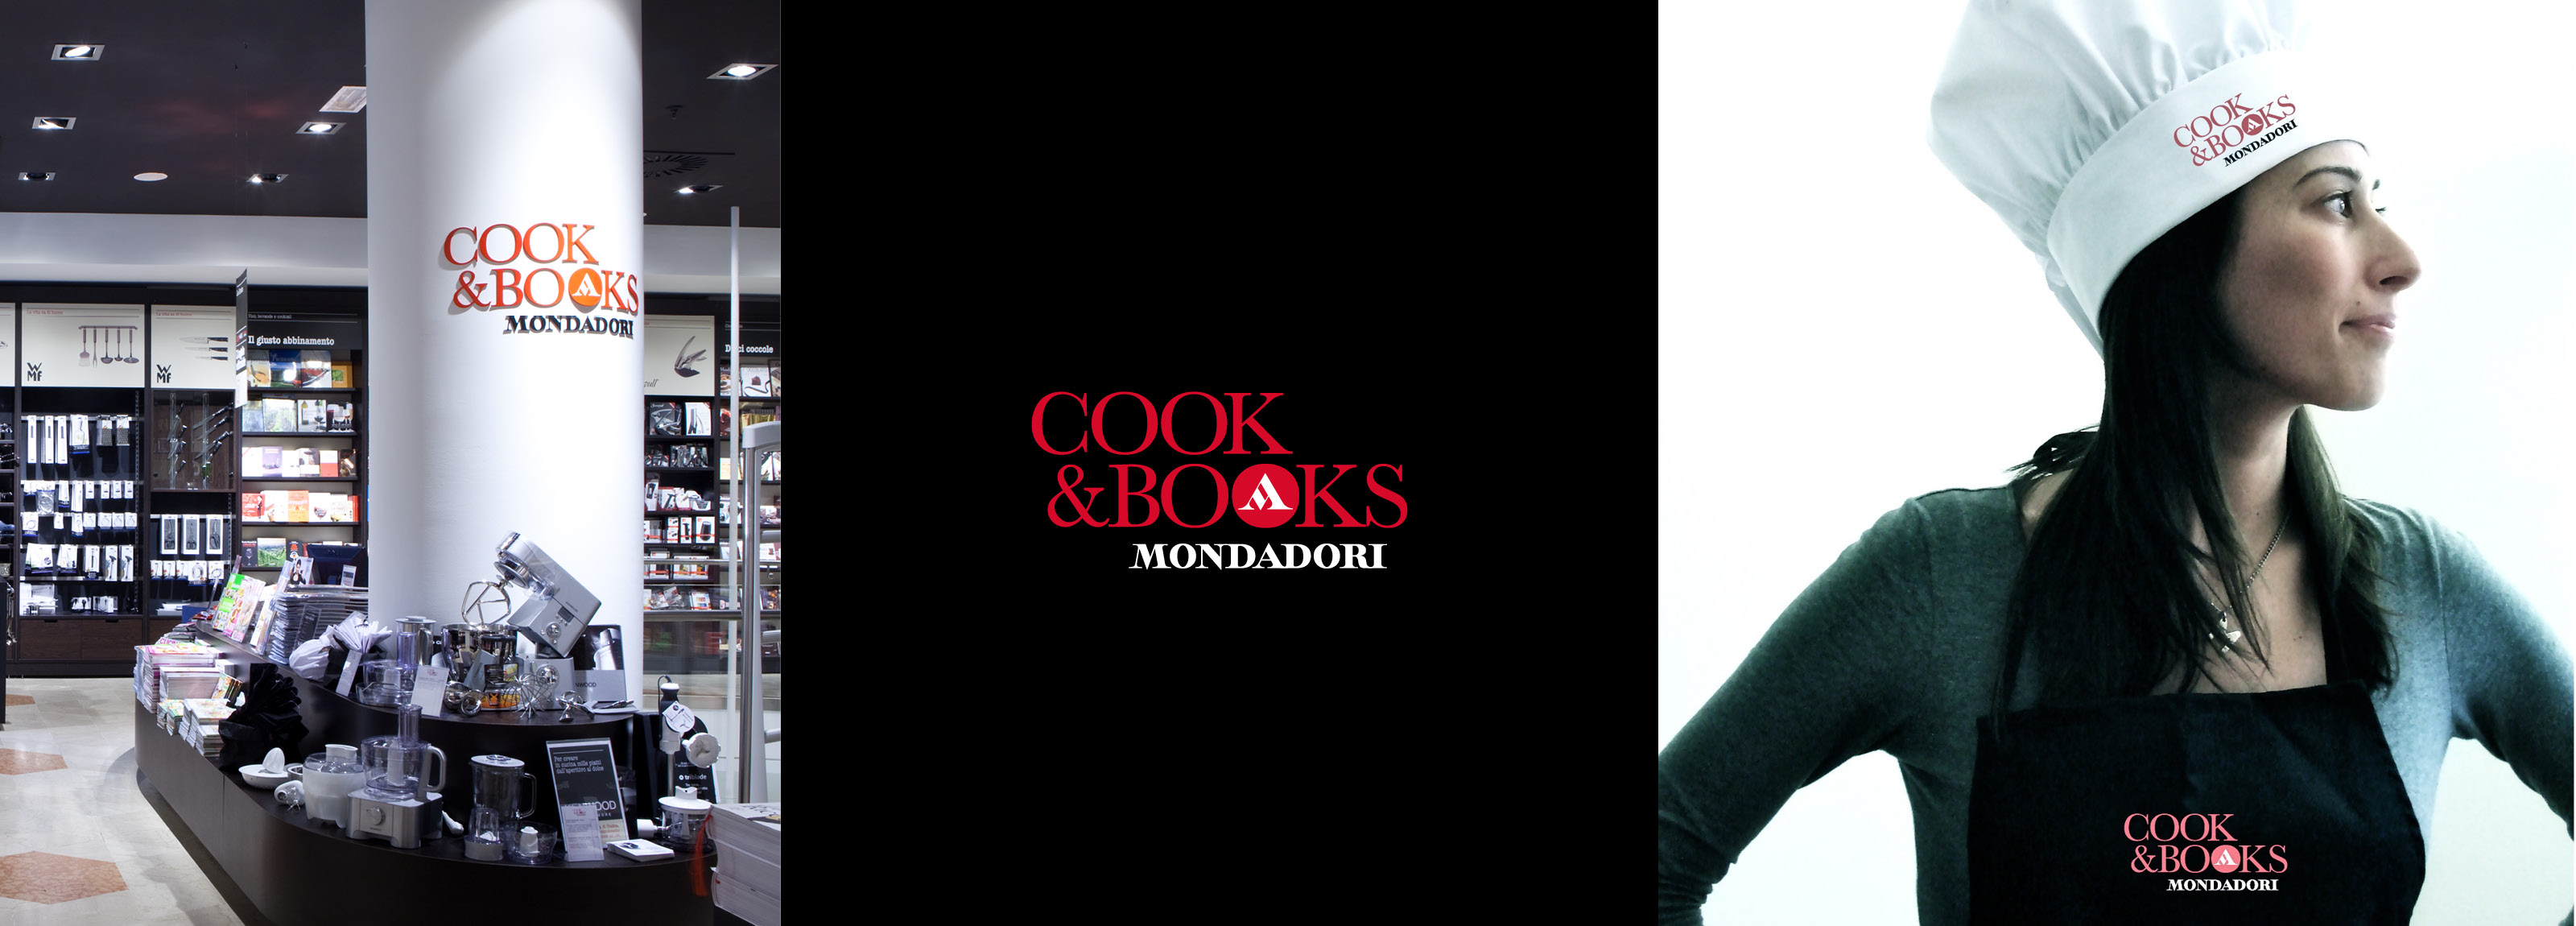 A refreshing identity and concept store in for Mondadori Cook & Books signed by Hangar Design Group